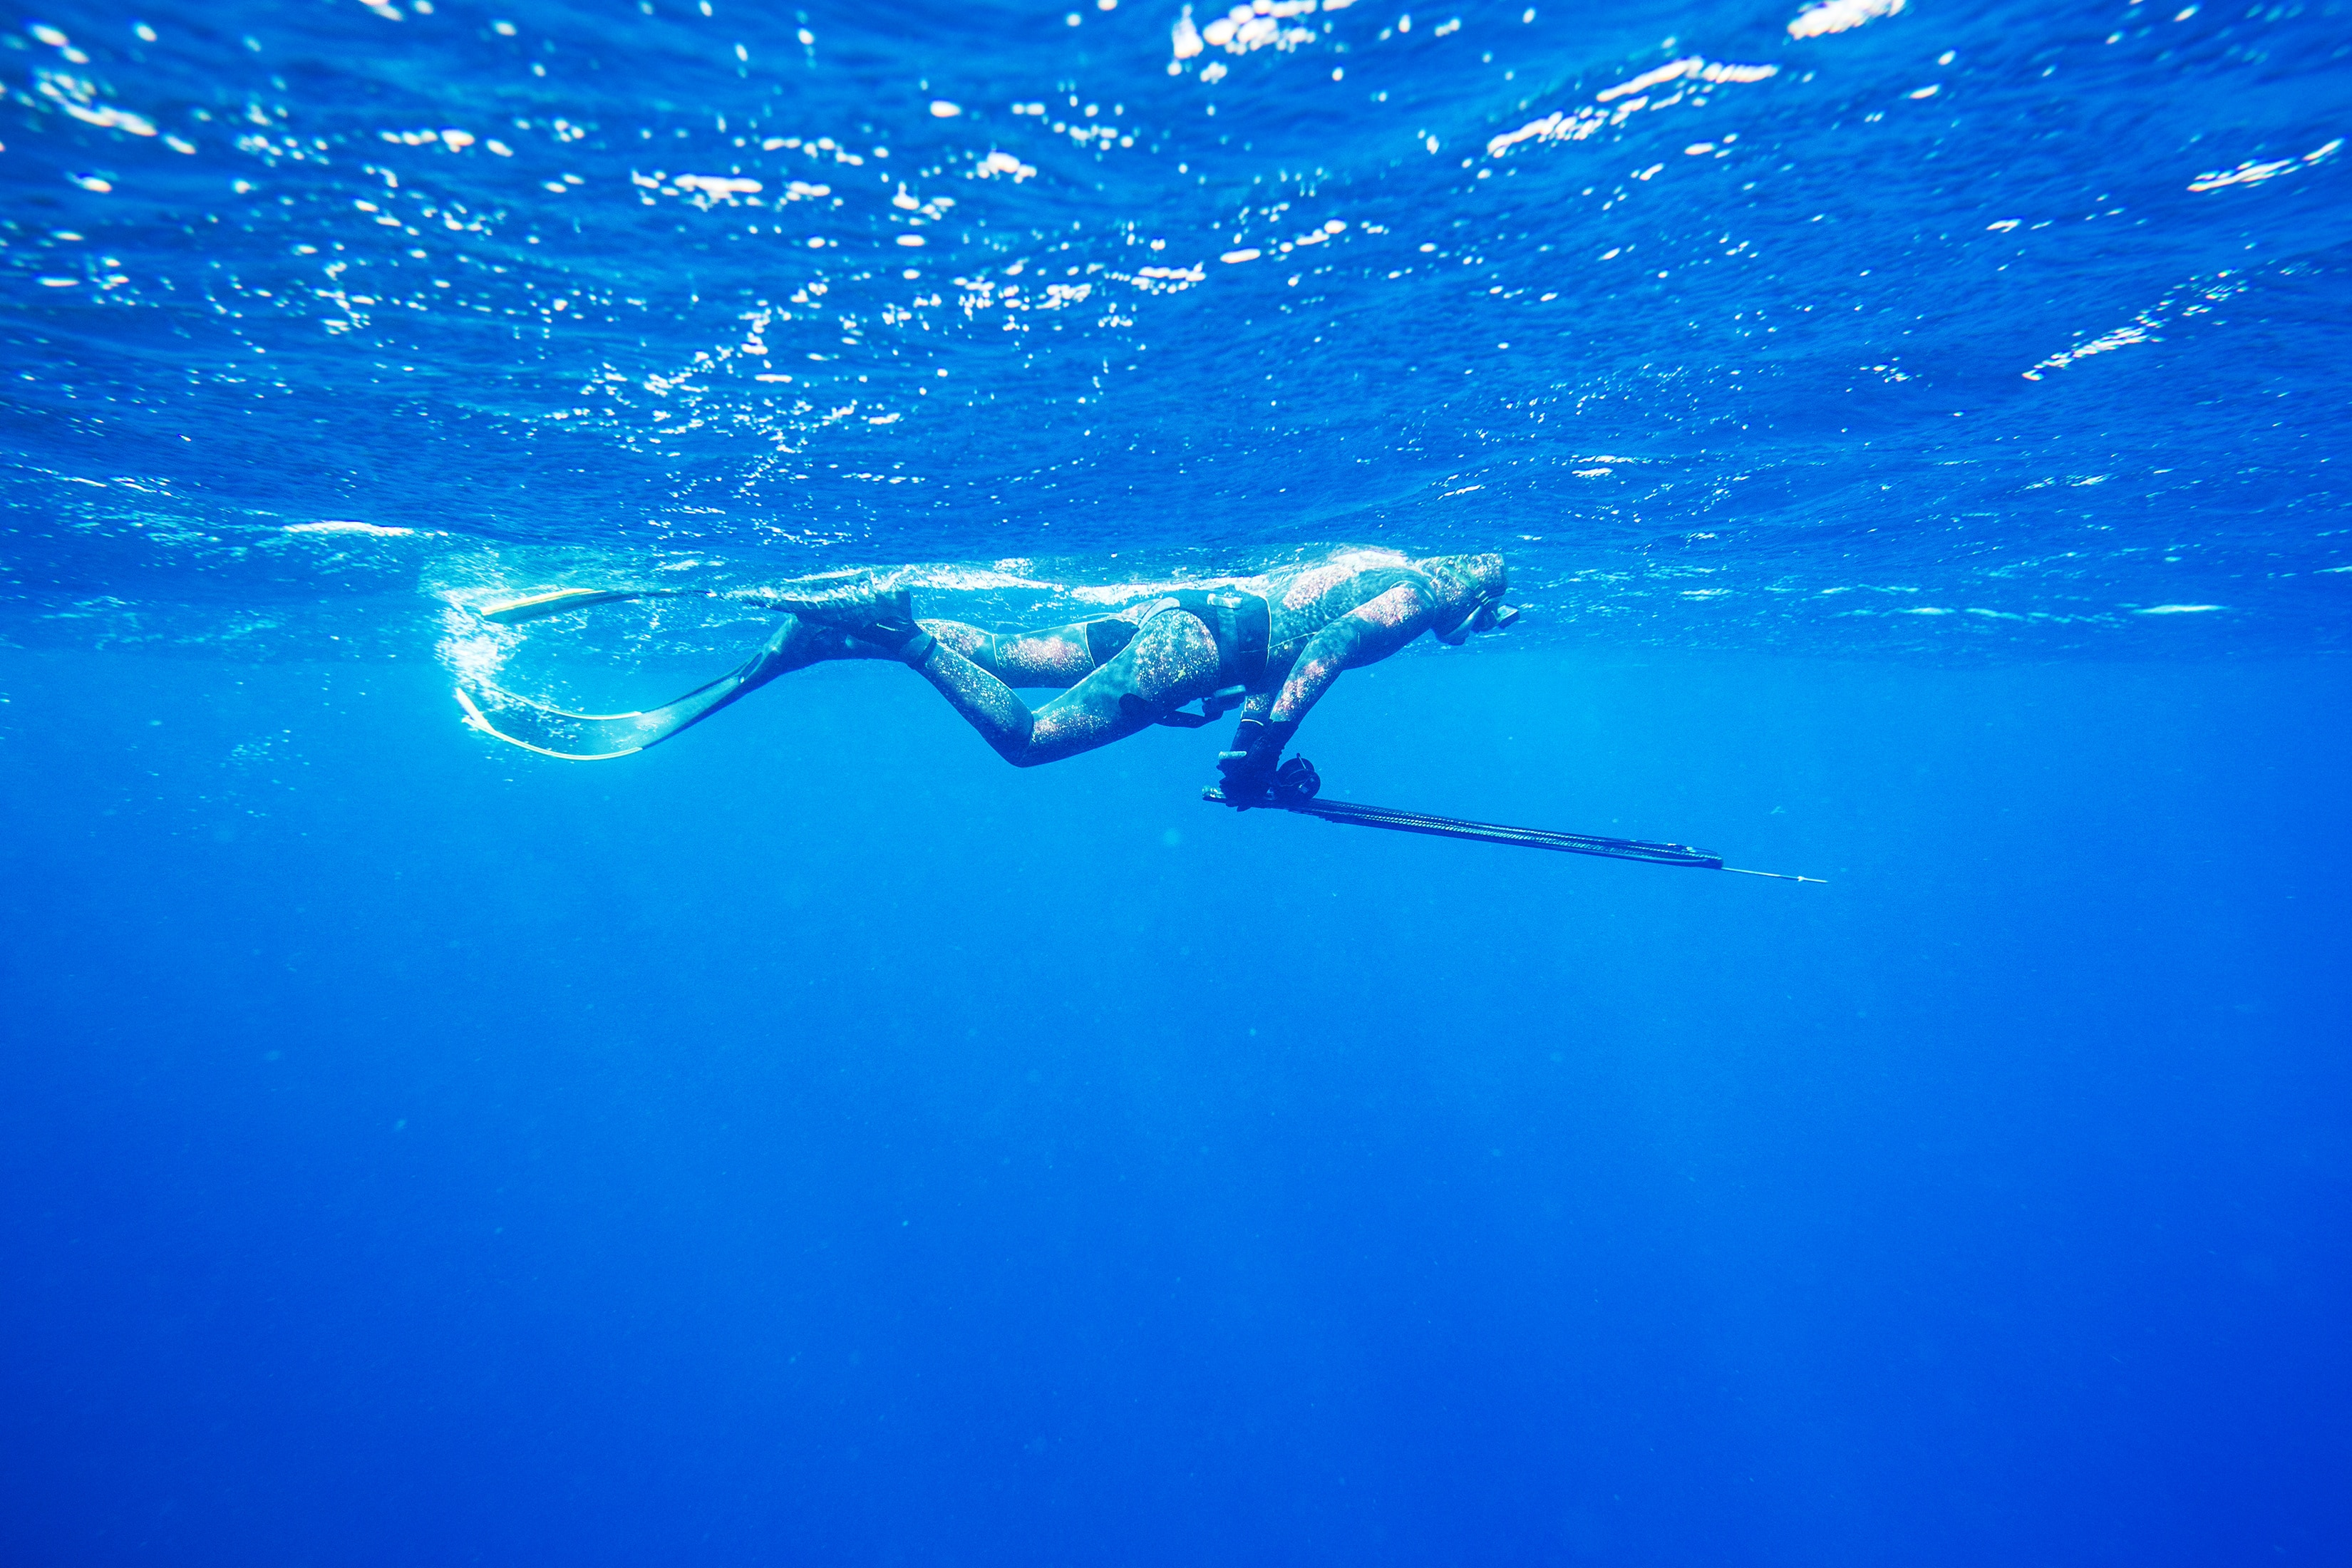 spearfisher swims on the surface of the sea before diving